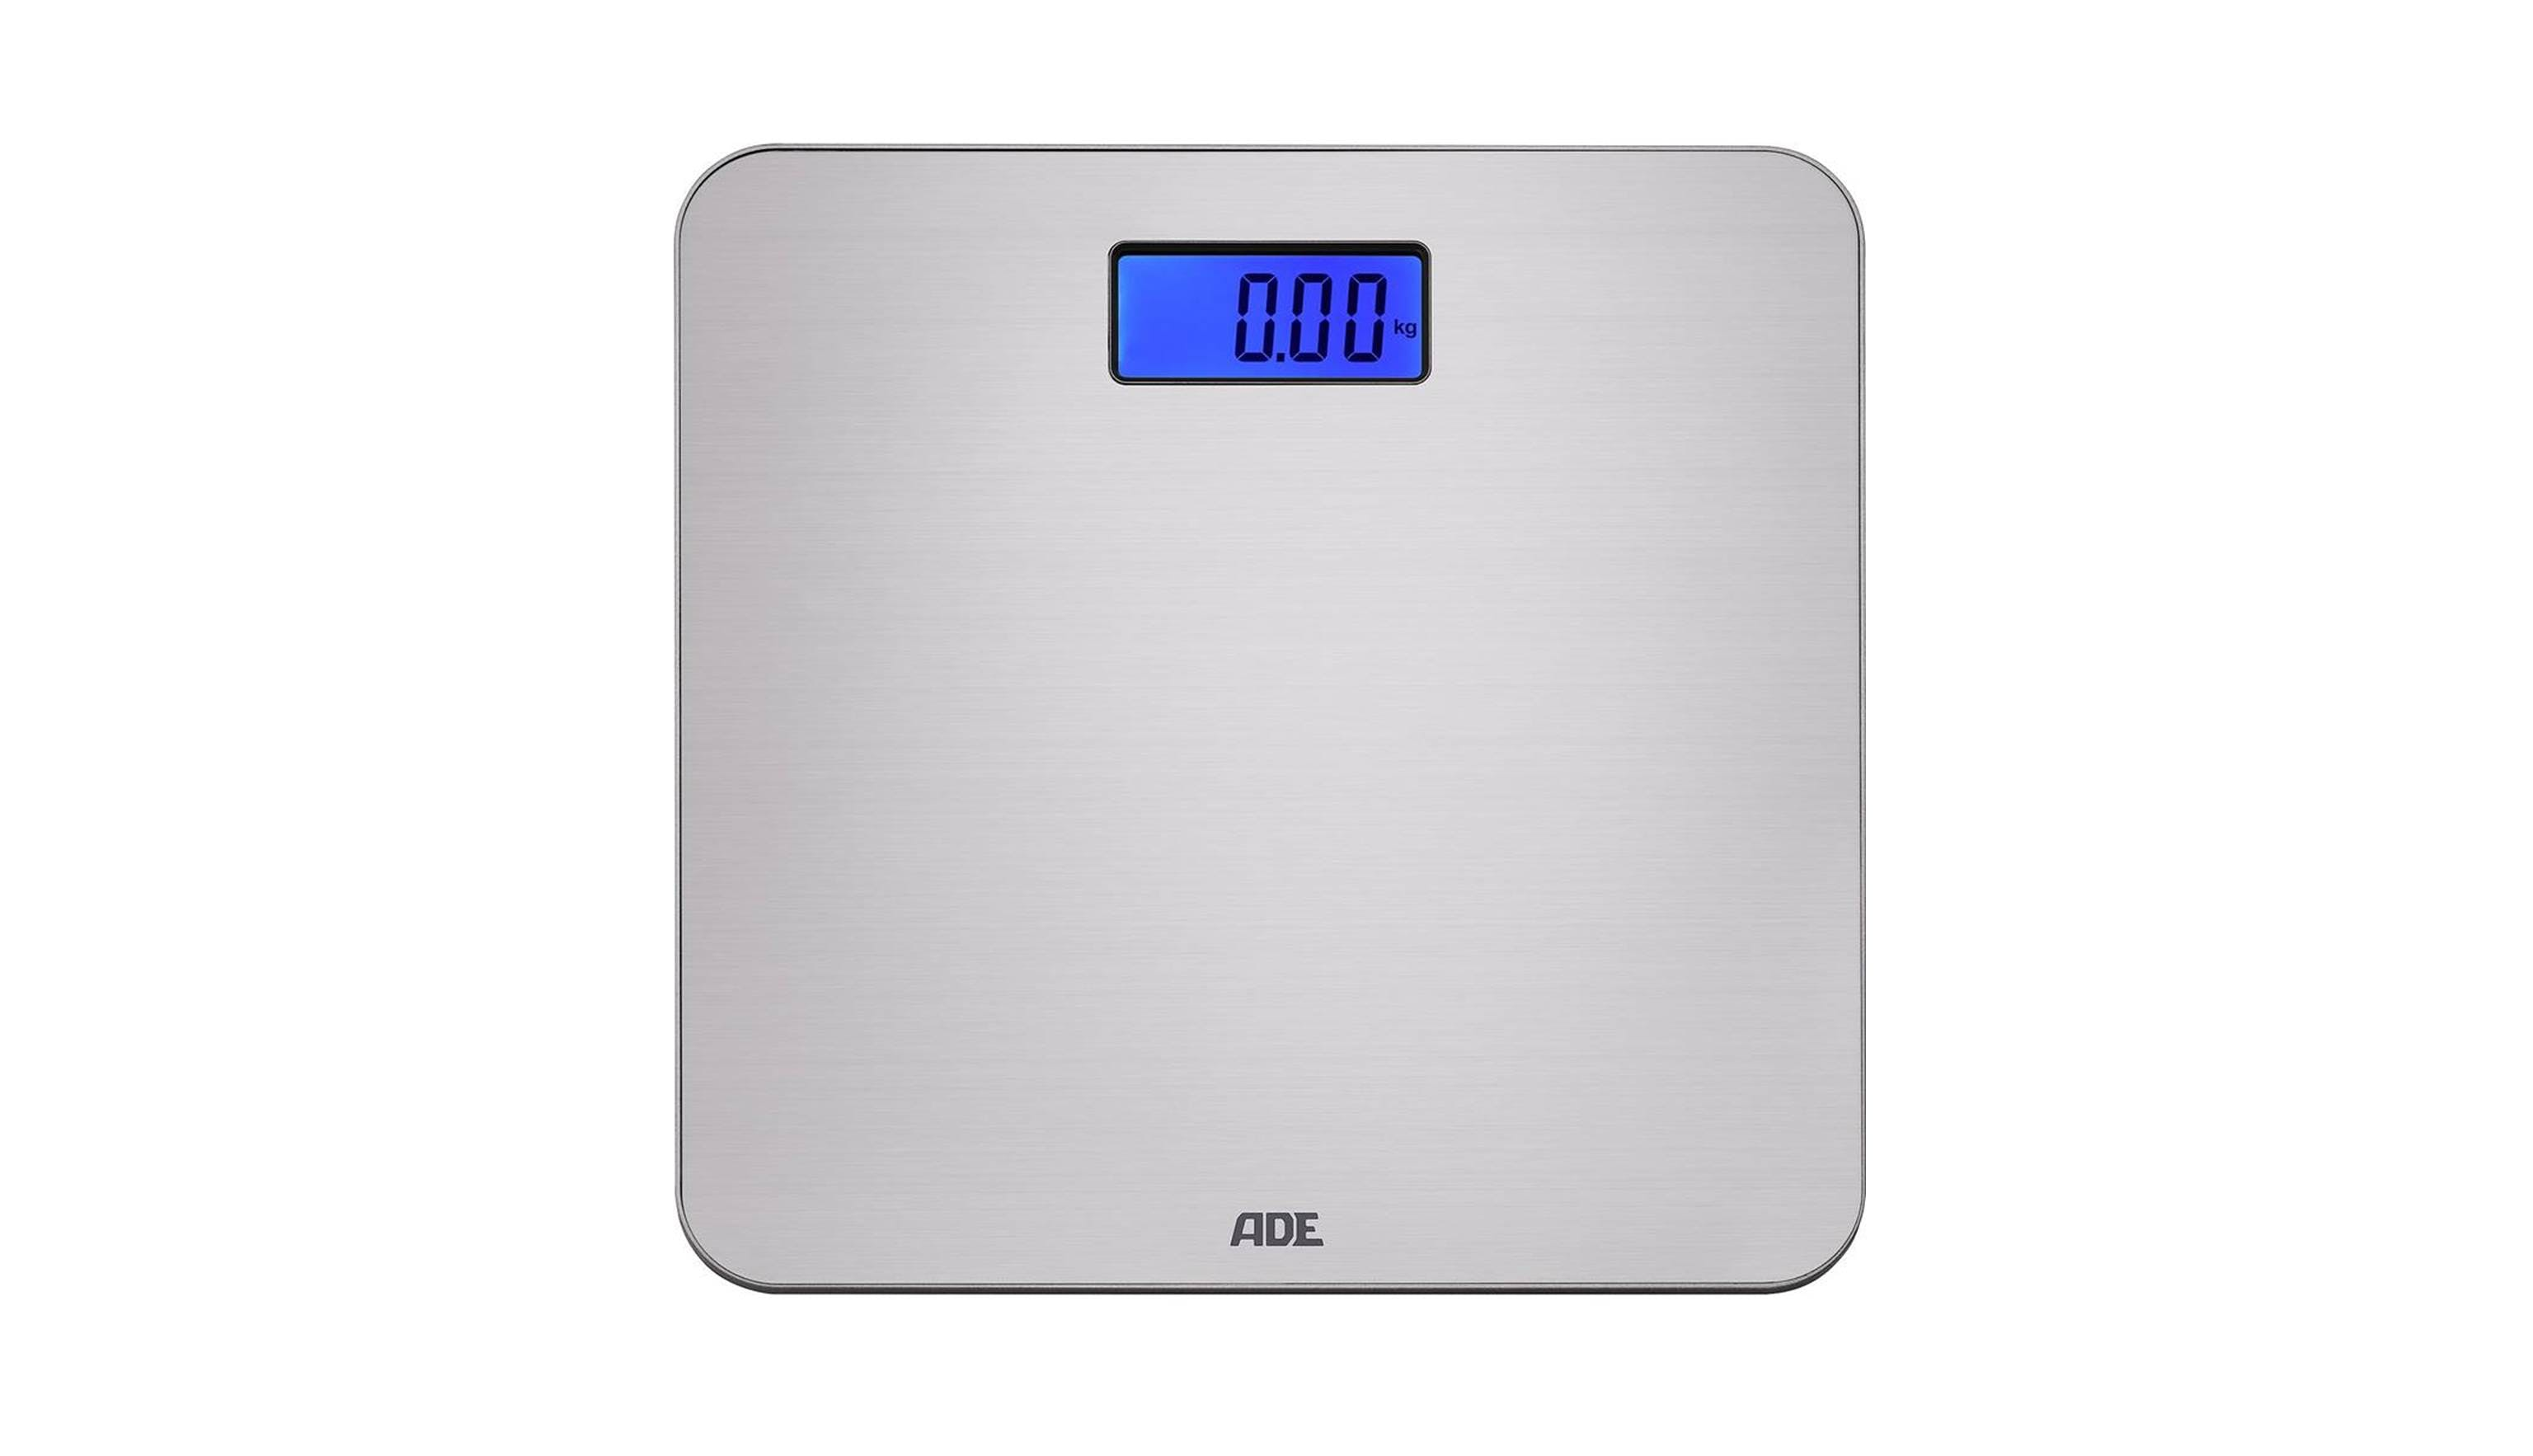 scales bathroom scale norman digital weight ade wellbeing and harvey singapore connected be fitness health